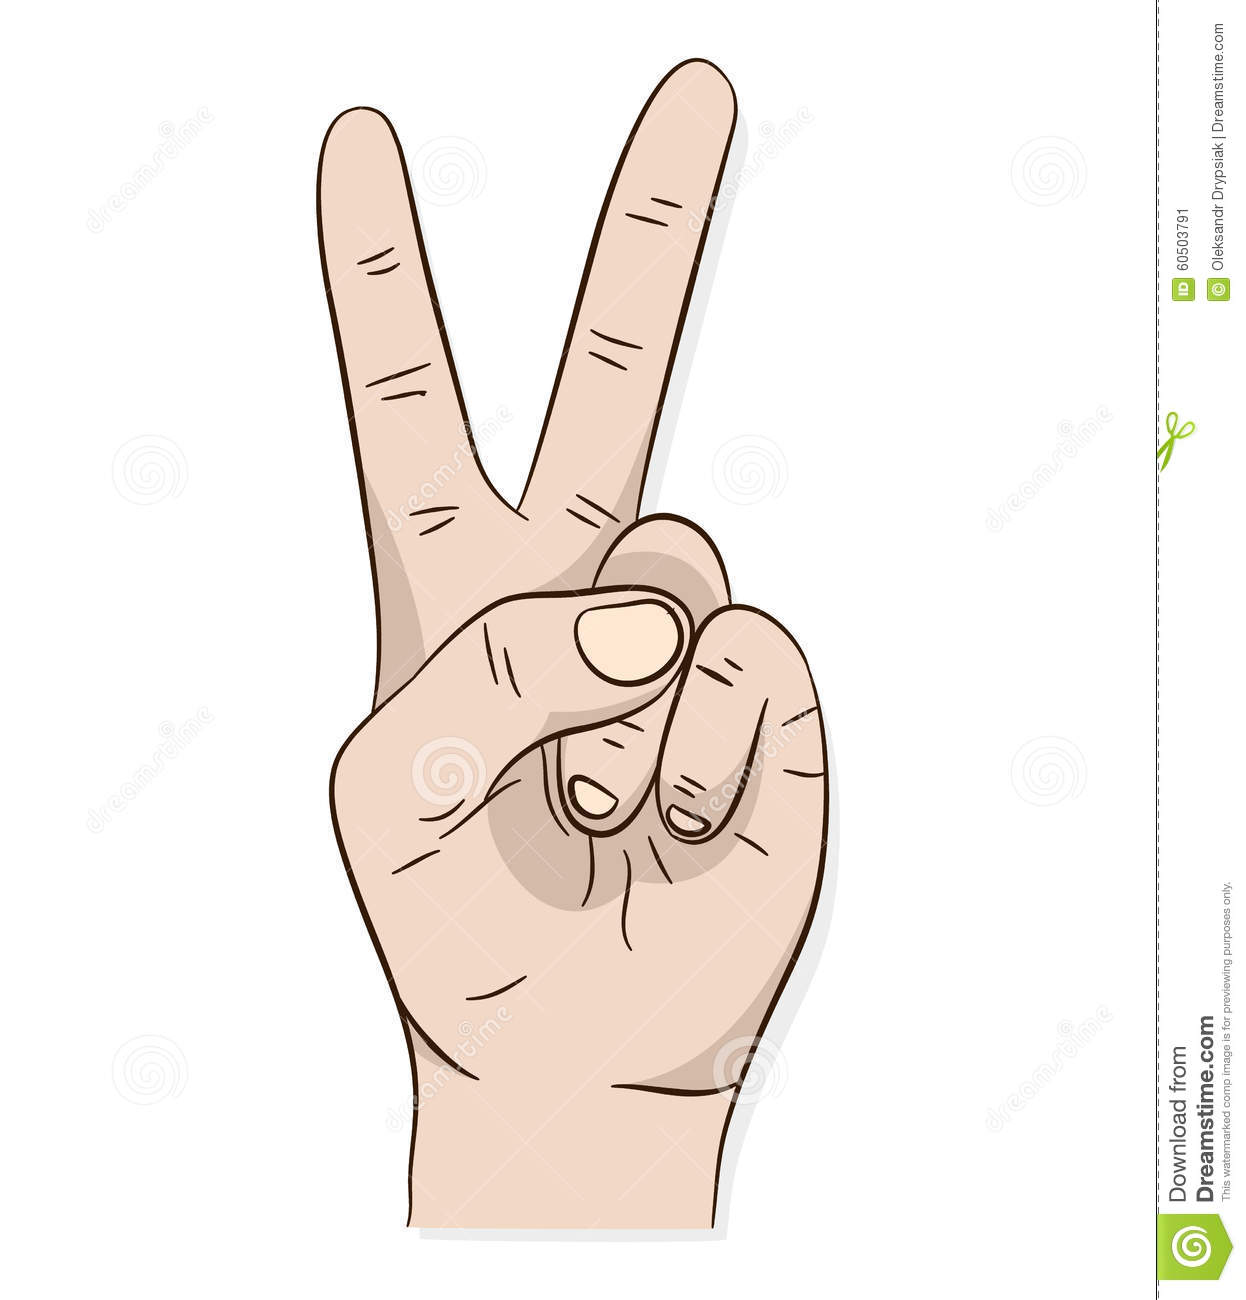 Hand peace or victory sign stock vector. Illustration of fist - 60503791